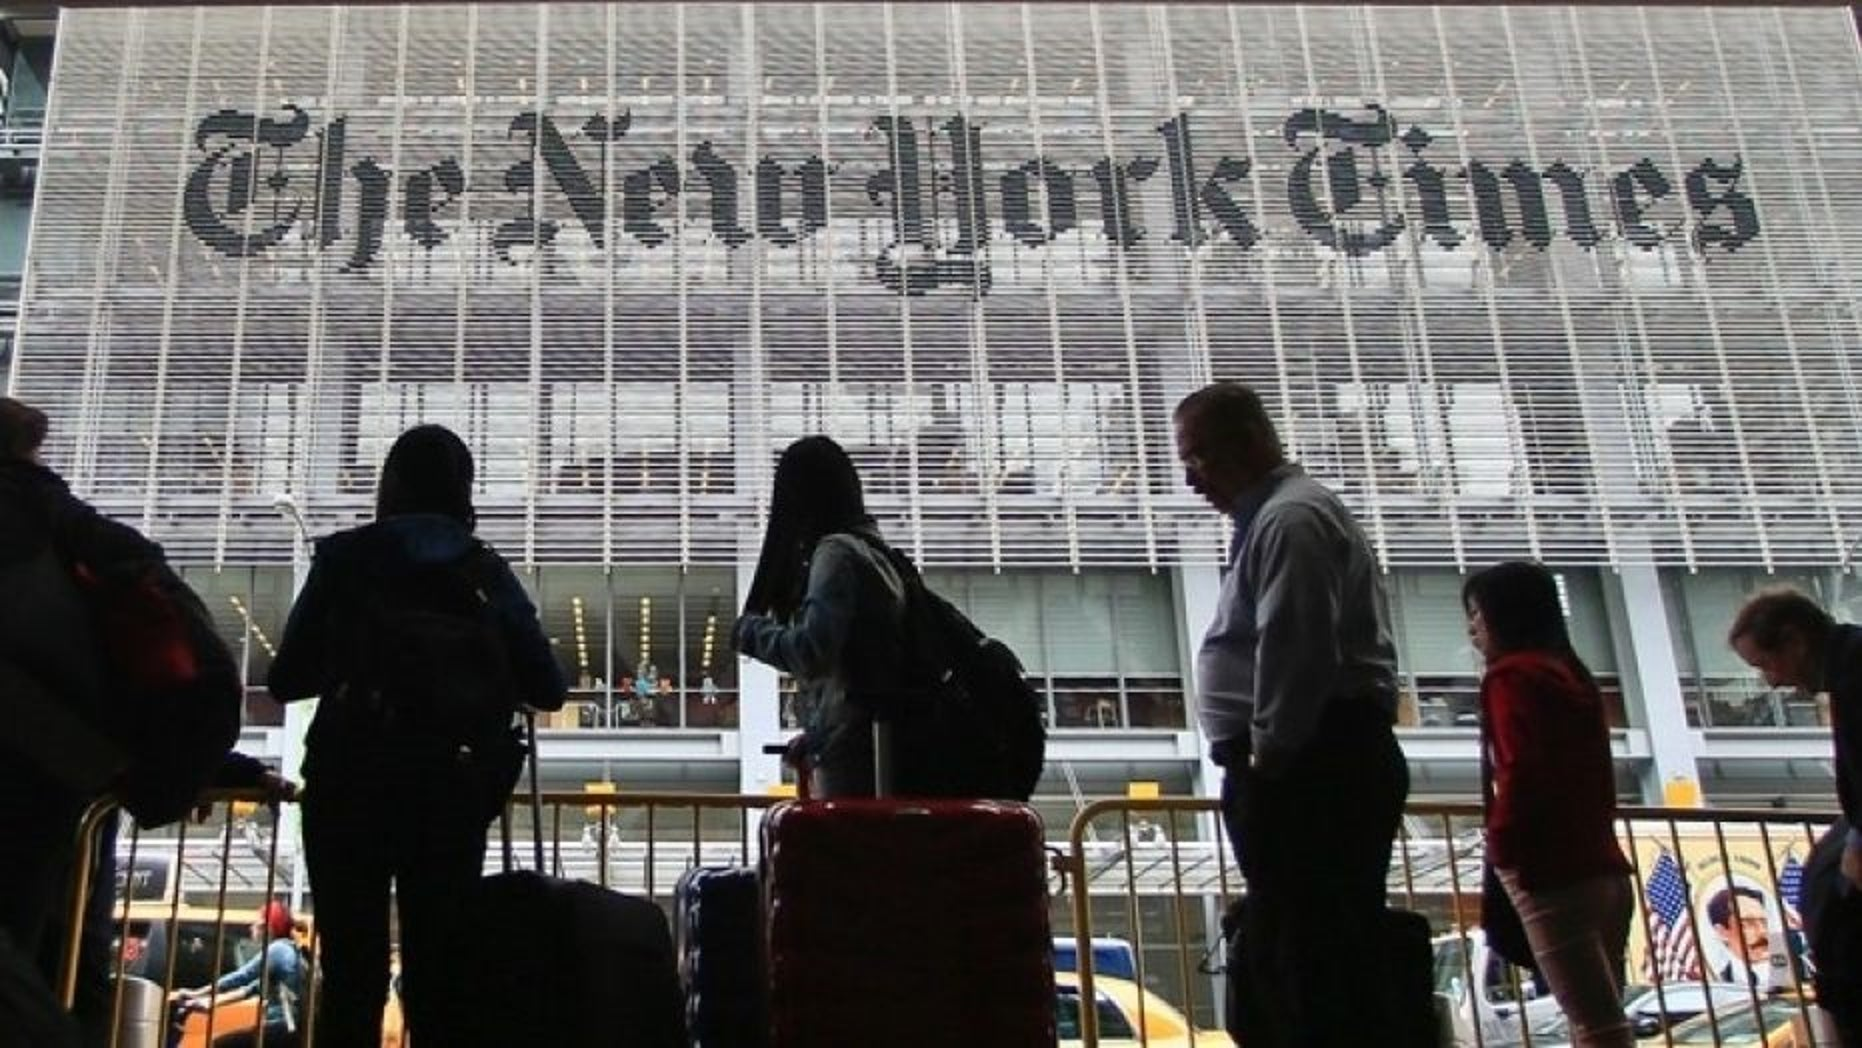 The New York Times has fired an opinion writer it hired just hours earlier, citing her past tweets.